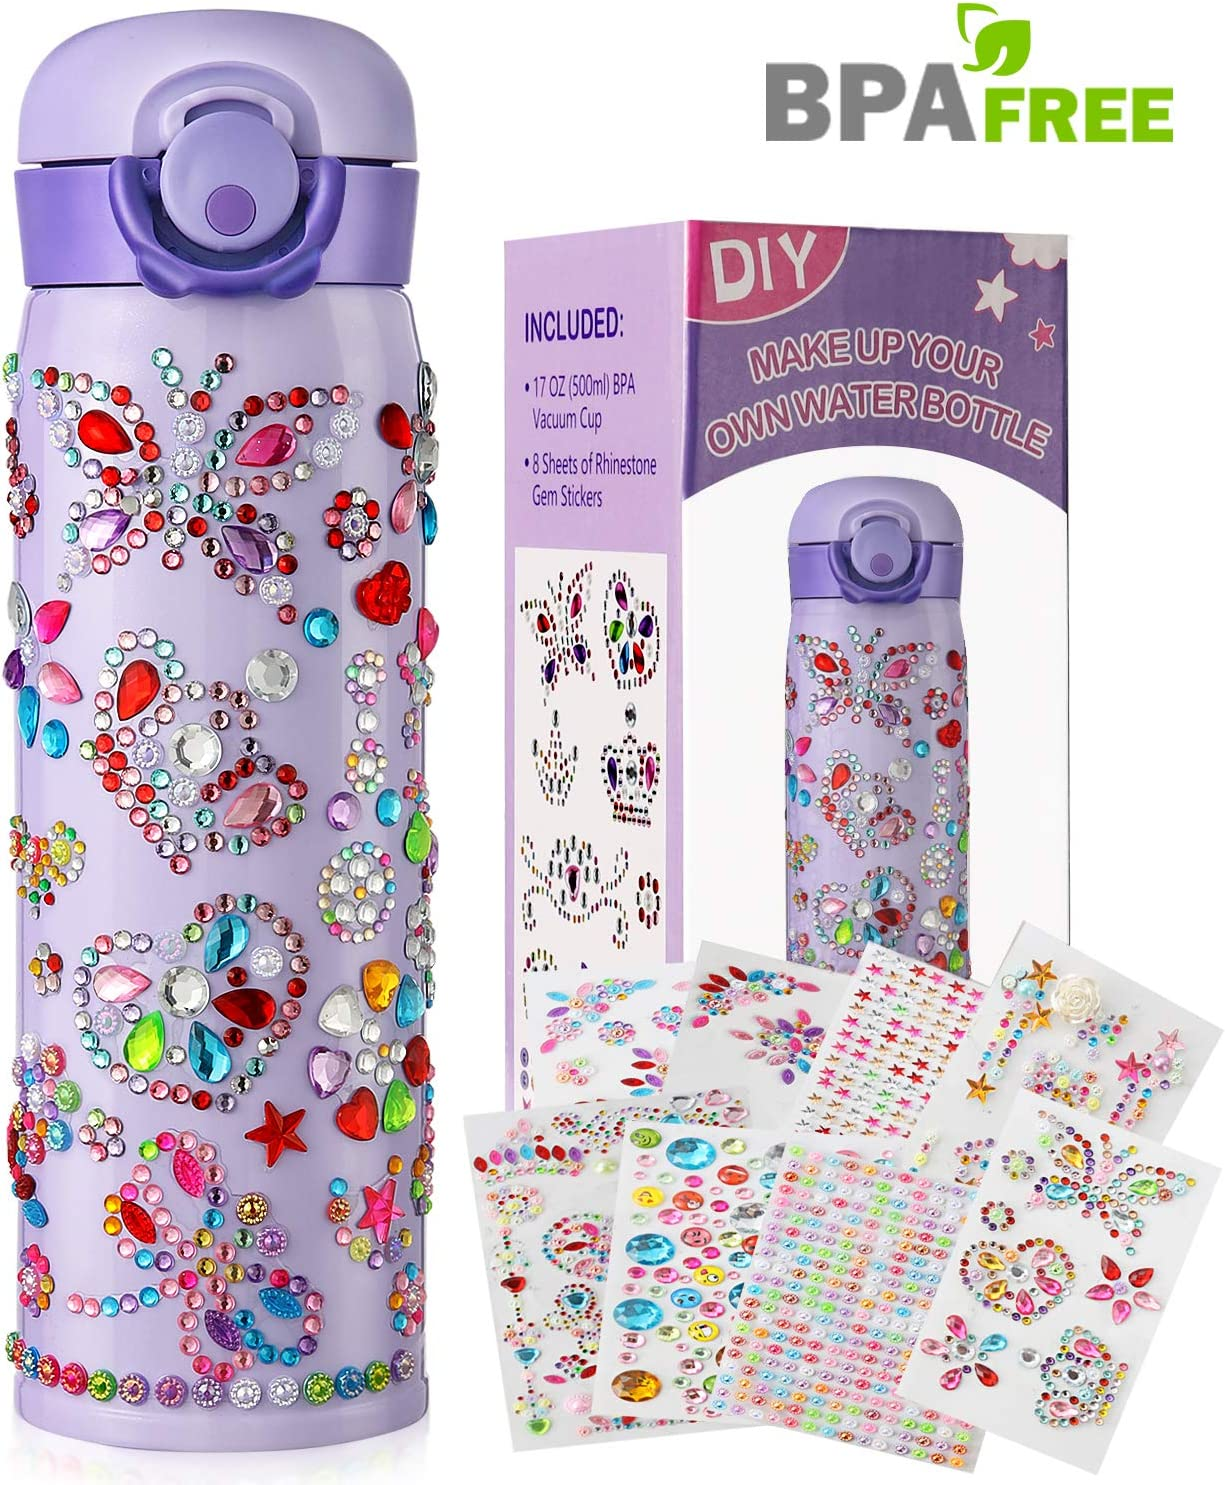 Gifts for Girls Decorate Your Own Water Bottles with Tons of Rhinestone Glitter Gem Stickers - Girls Toys DIY Arts and Crafts Set for Kids, BPA Free Stainless Steel Vacuum Insulated Mug (17 OZ)